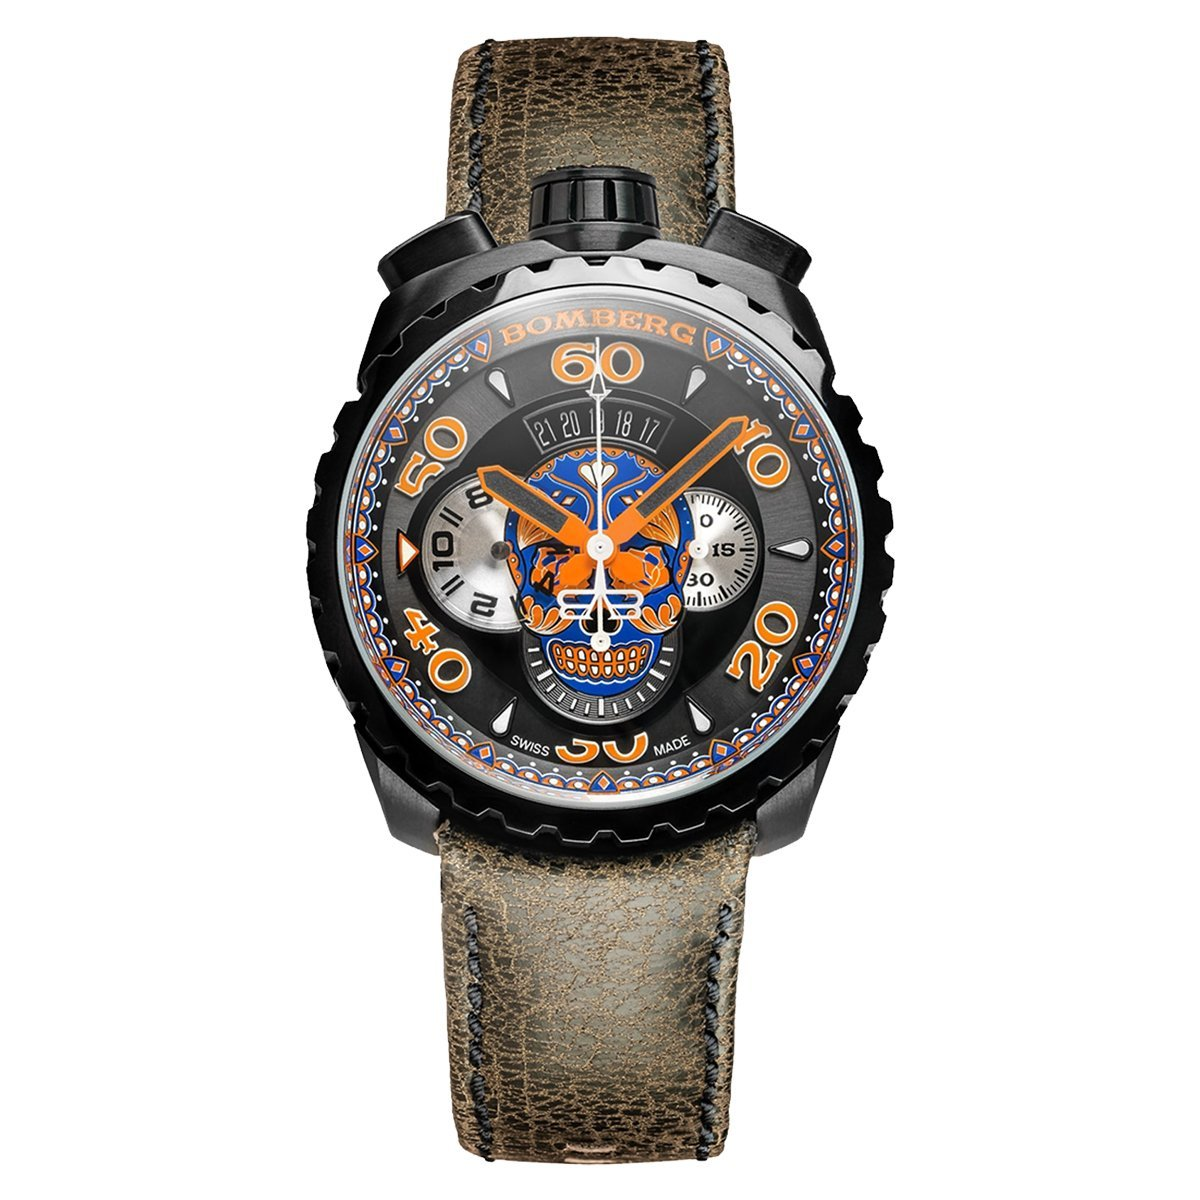 Bomberg BOLT-68 Chronograph Blue Skull - Watches & Crystals